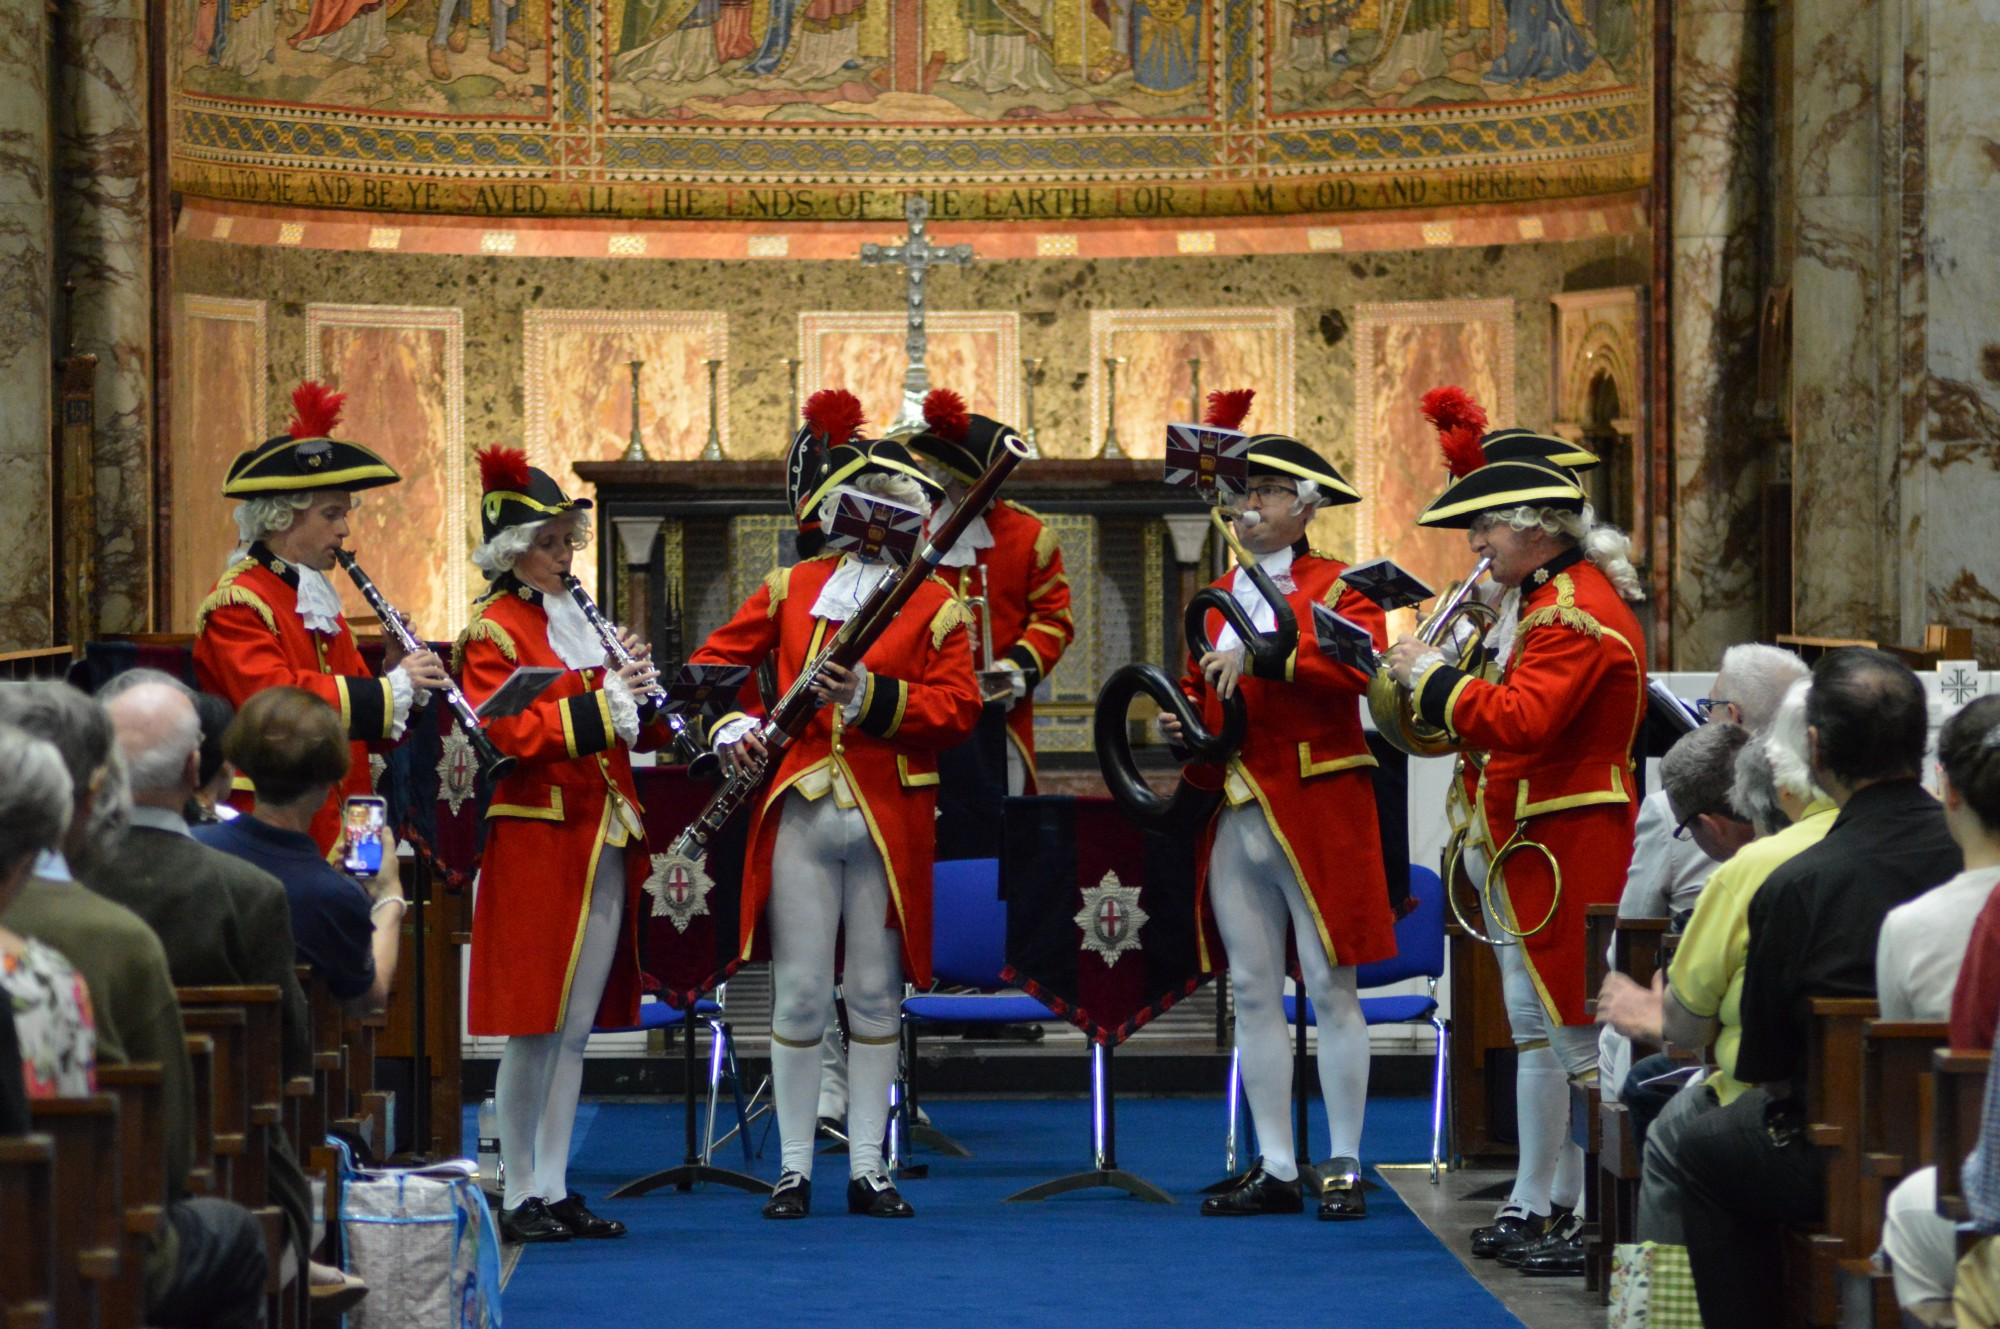 Men dressed as British soldiers playing in a band in a sancturary in front of a seated audience.